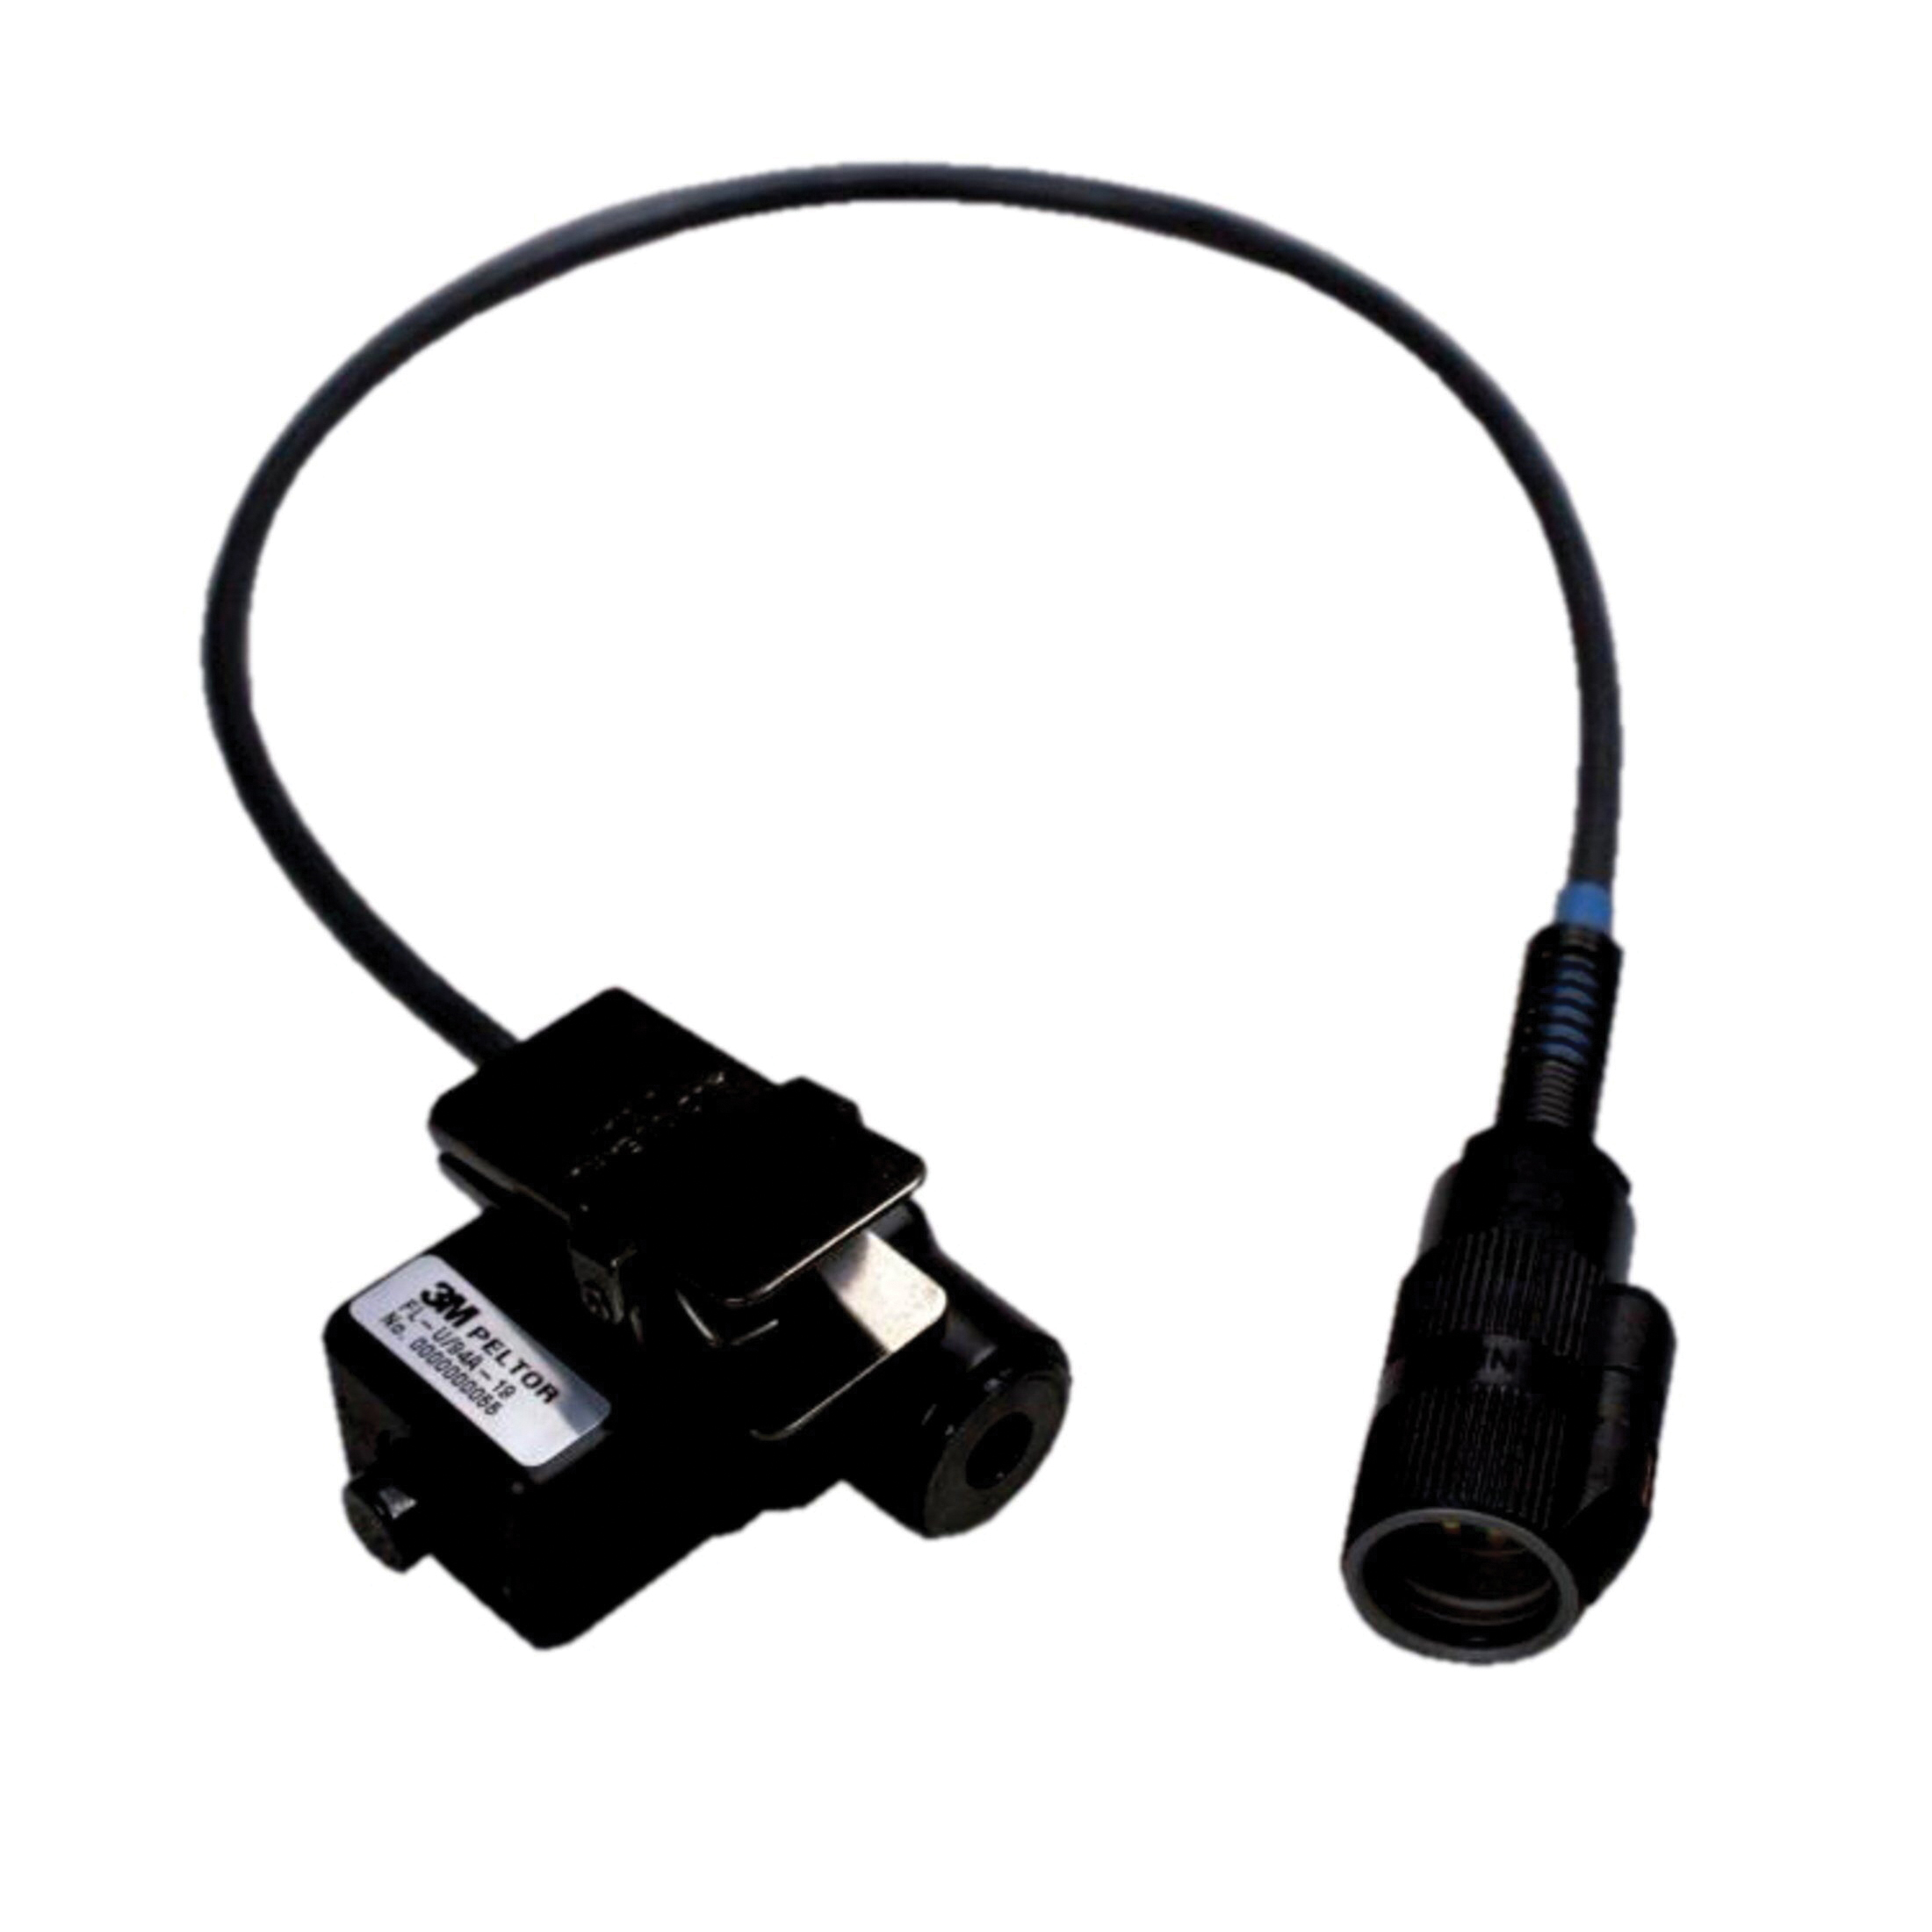 Peltor™ 093045-93368 In-Line Portable Push-To-Talk Adaptor, For Use With Kenwood TK220/320, 240/340, 240D/340D, 208/308, 430/431, 250/350/353, 260/270, TK-3160, TK360/370, 248/348, Free Talk, Free Talk XL and Pro Talk Radios